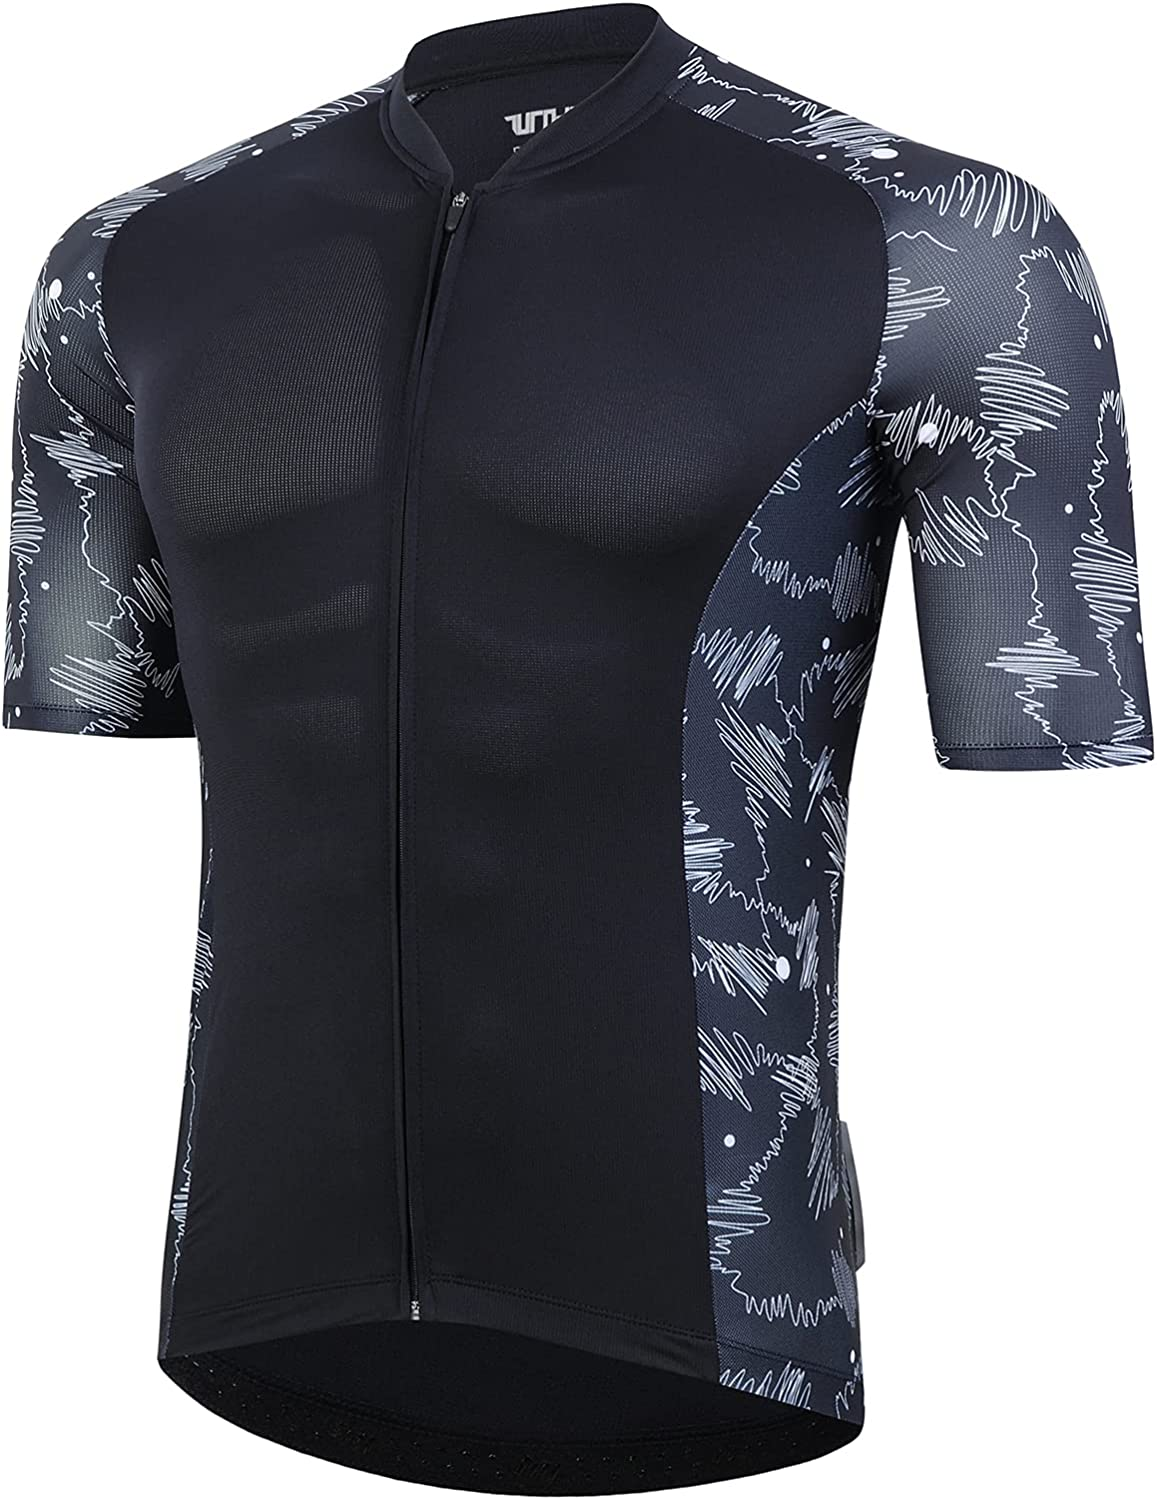 Turnhier Men Max 55% OFF Bike Jersey Sales Short for Sleeves Fu Cycling